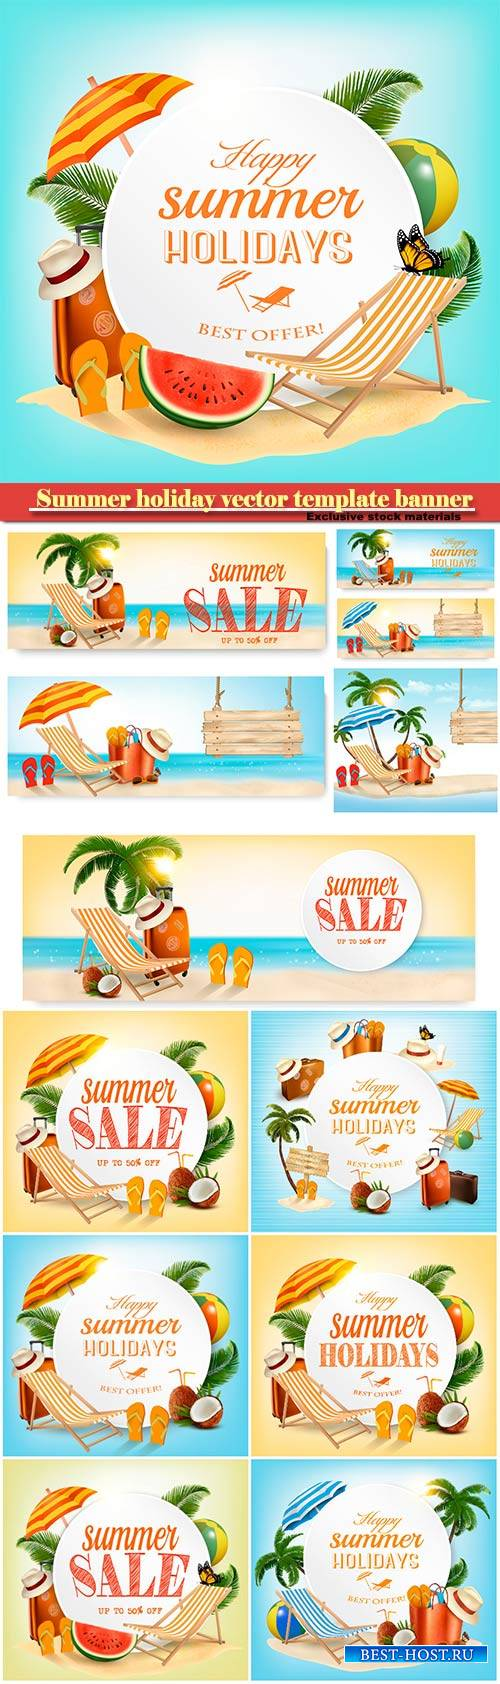 Summer holiday vector template banner